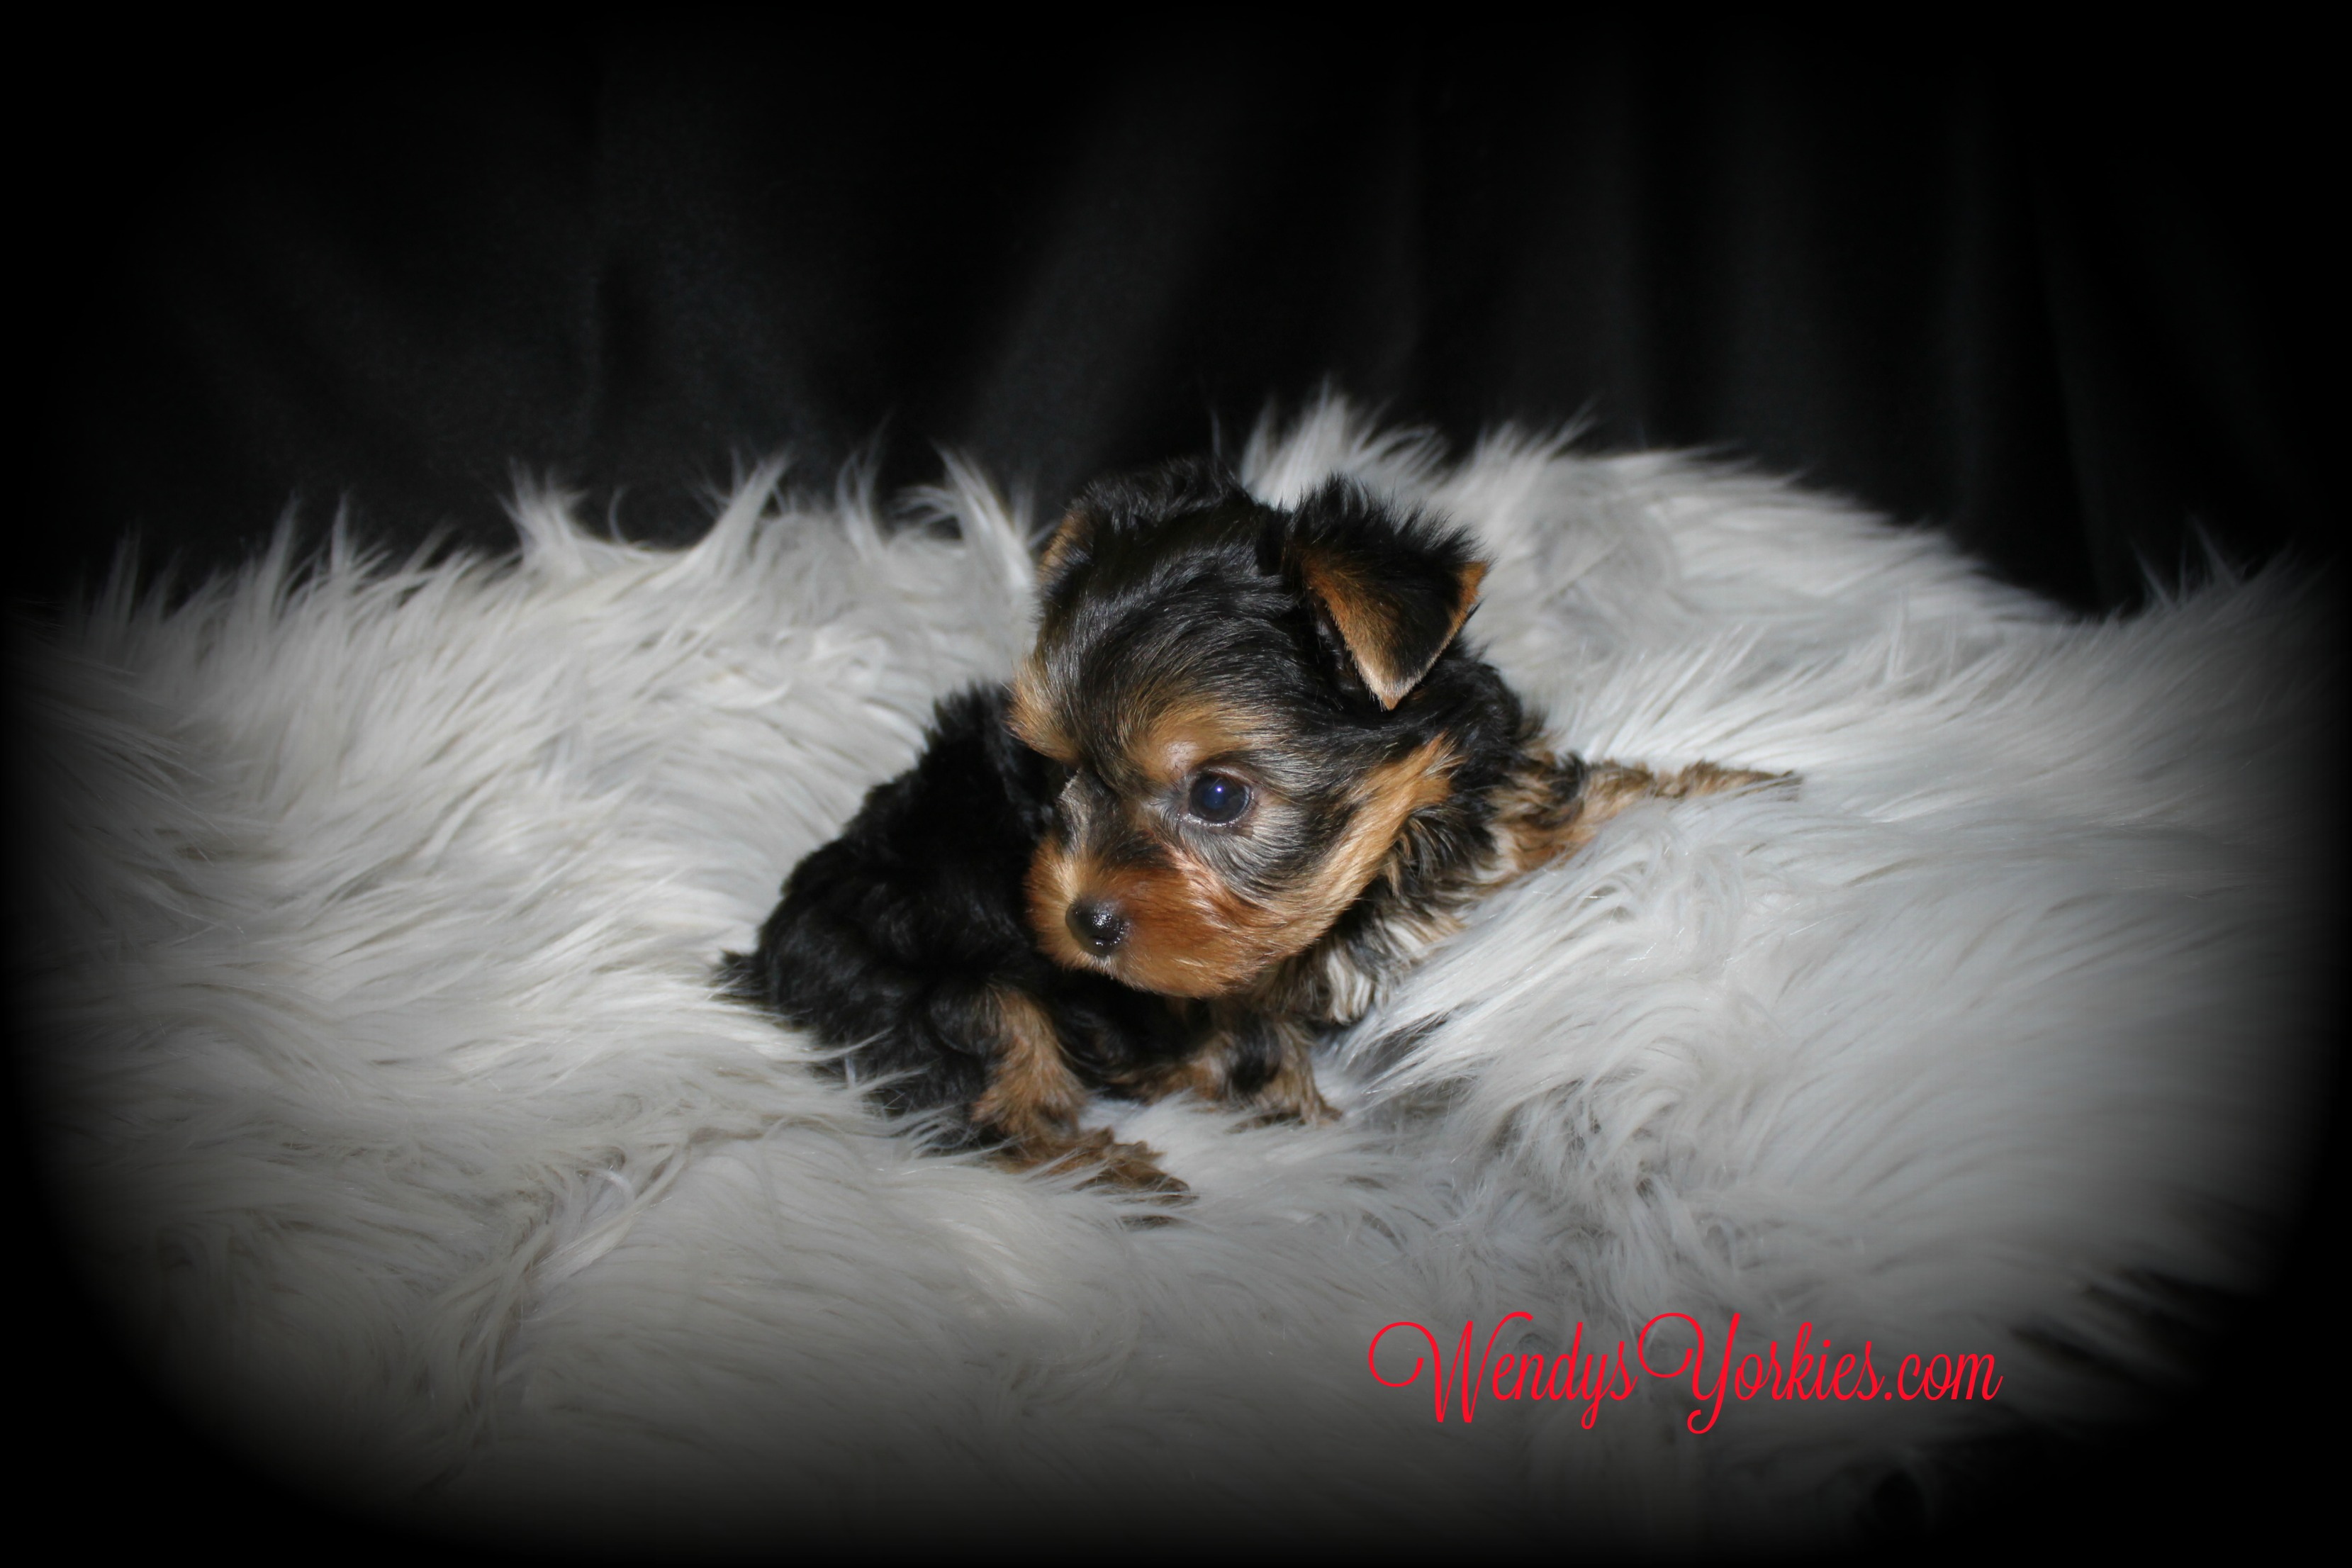 Teacup Yorkie puppy for sale, WendysYorkies,com, Grace m1